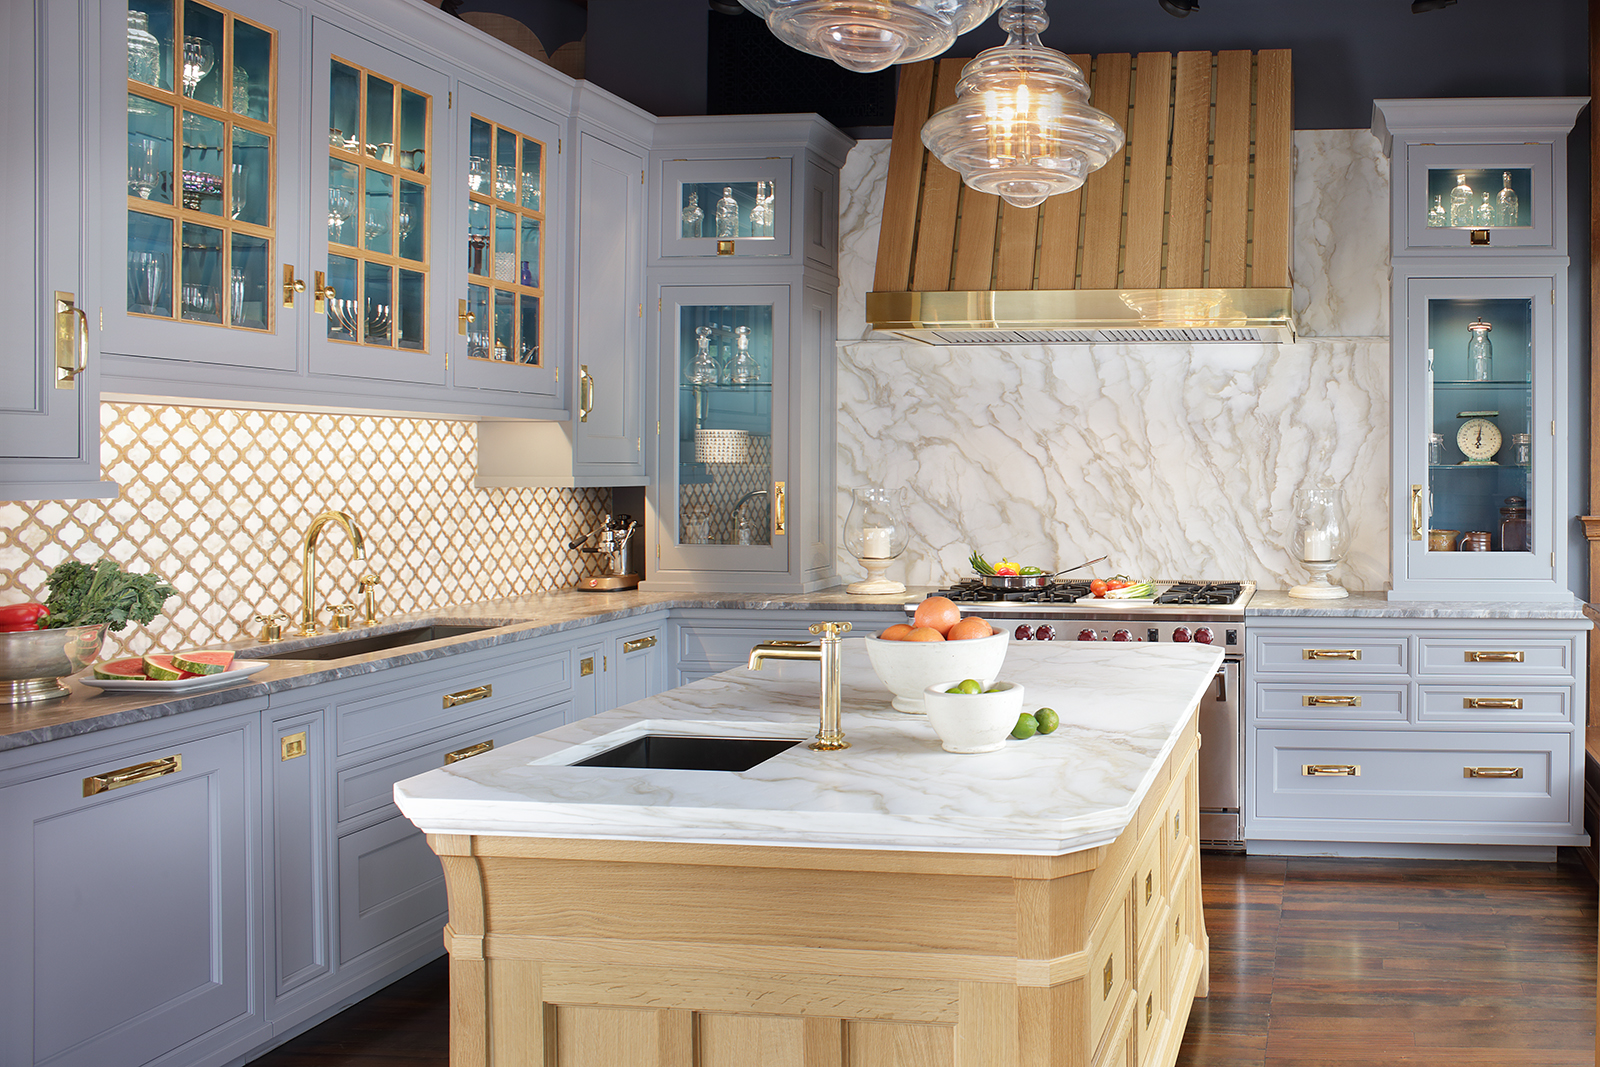 New Traditions Style Kitchen Remodel with Rustic Features